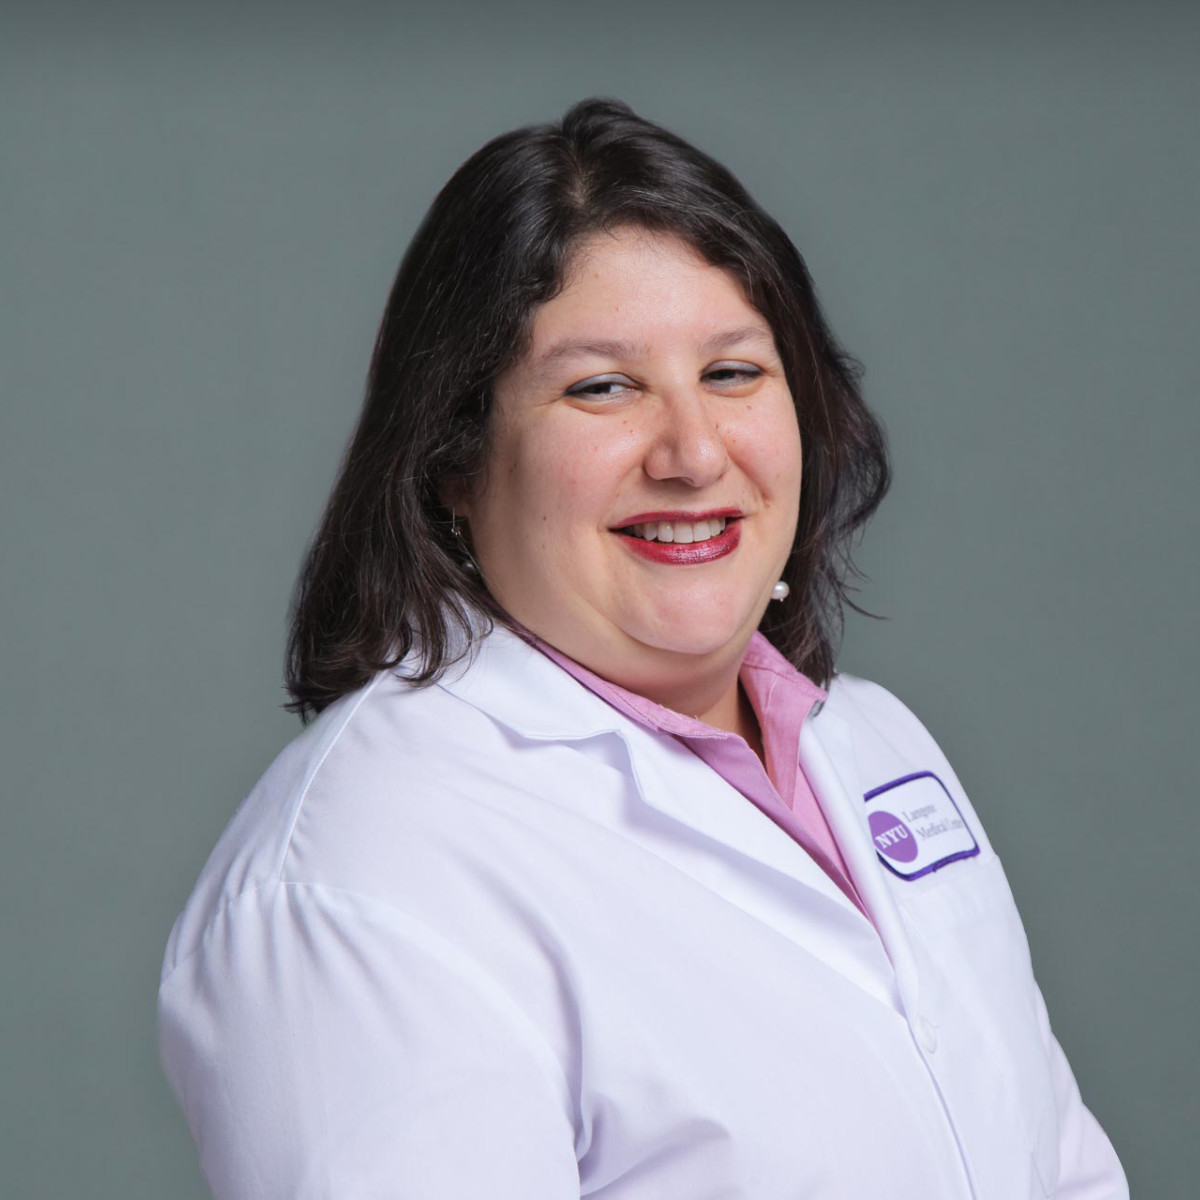 Nicole L. Sasson,MD. Physical Medicine and Rehabilitation